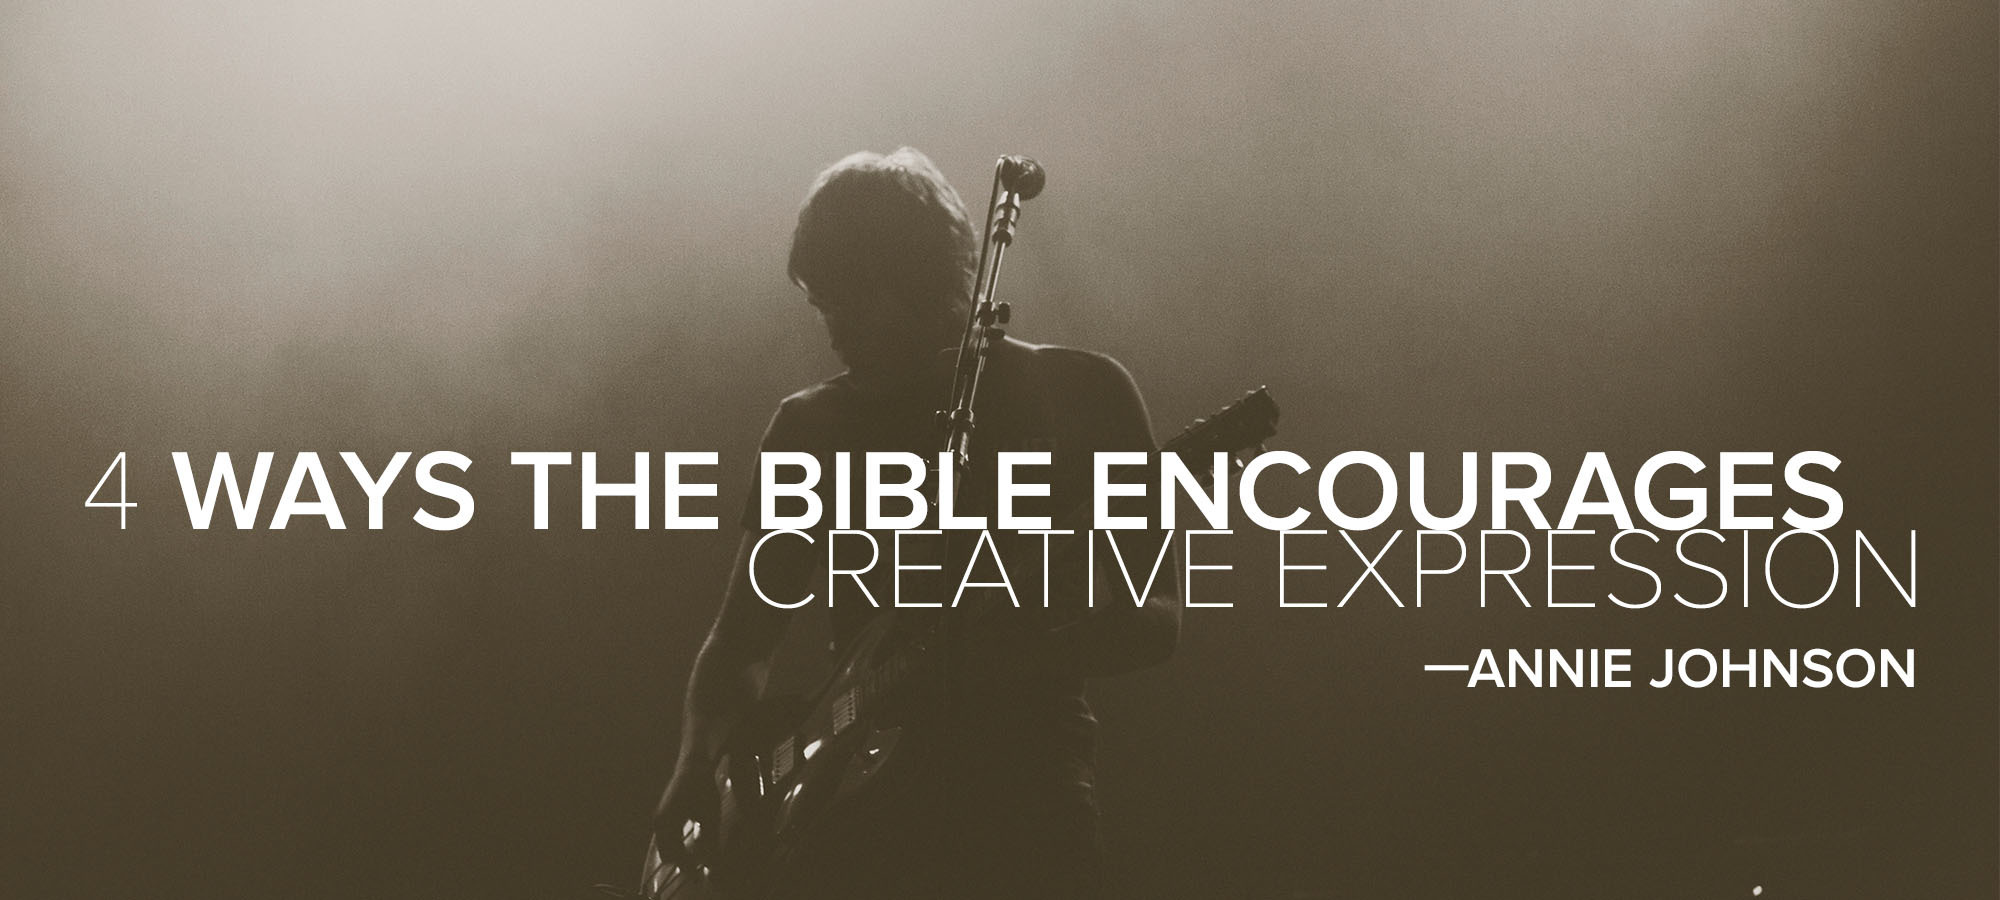 Four Ways the Bible Encourages Creative Expression